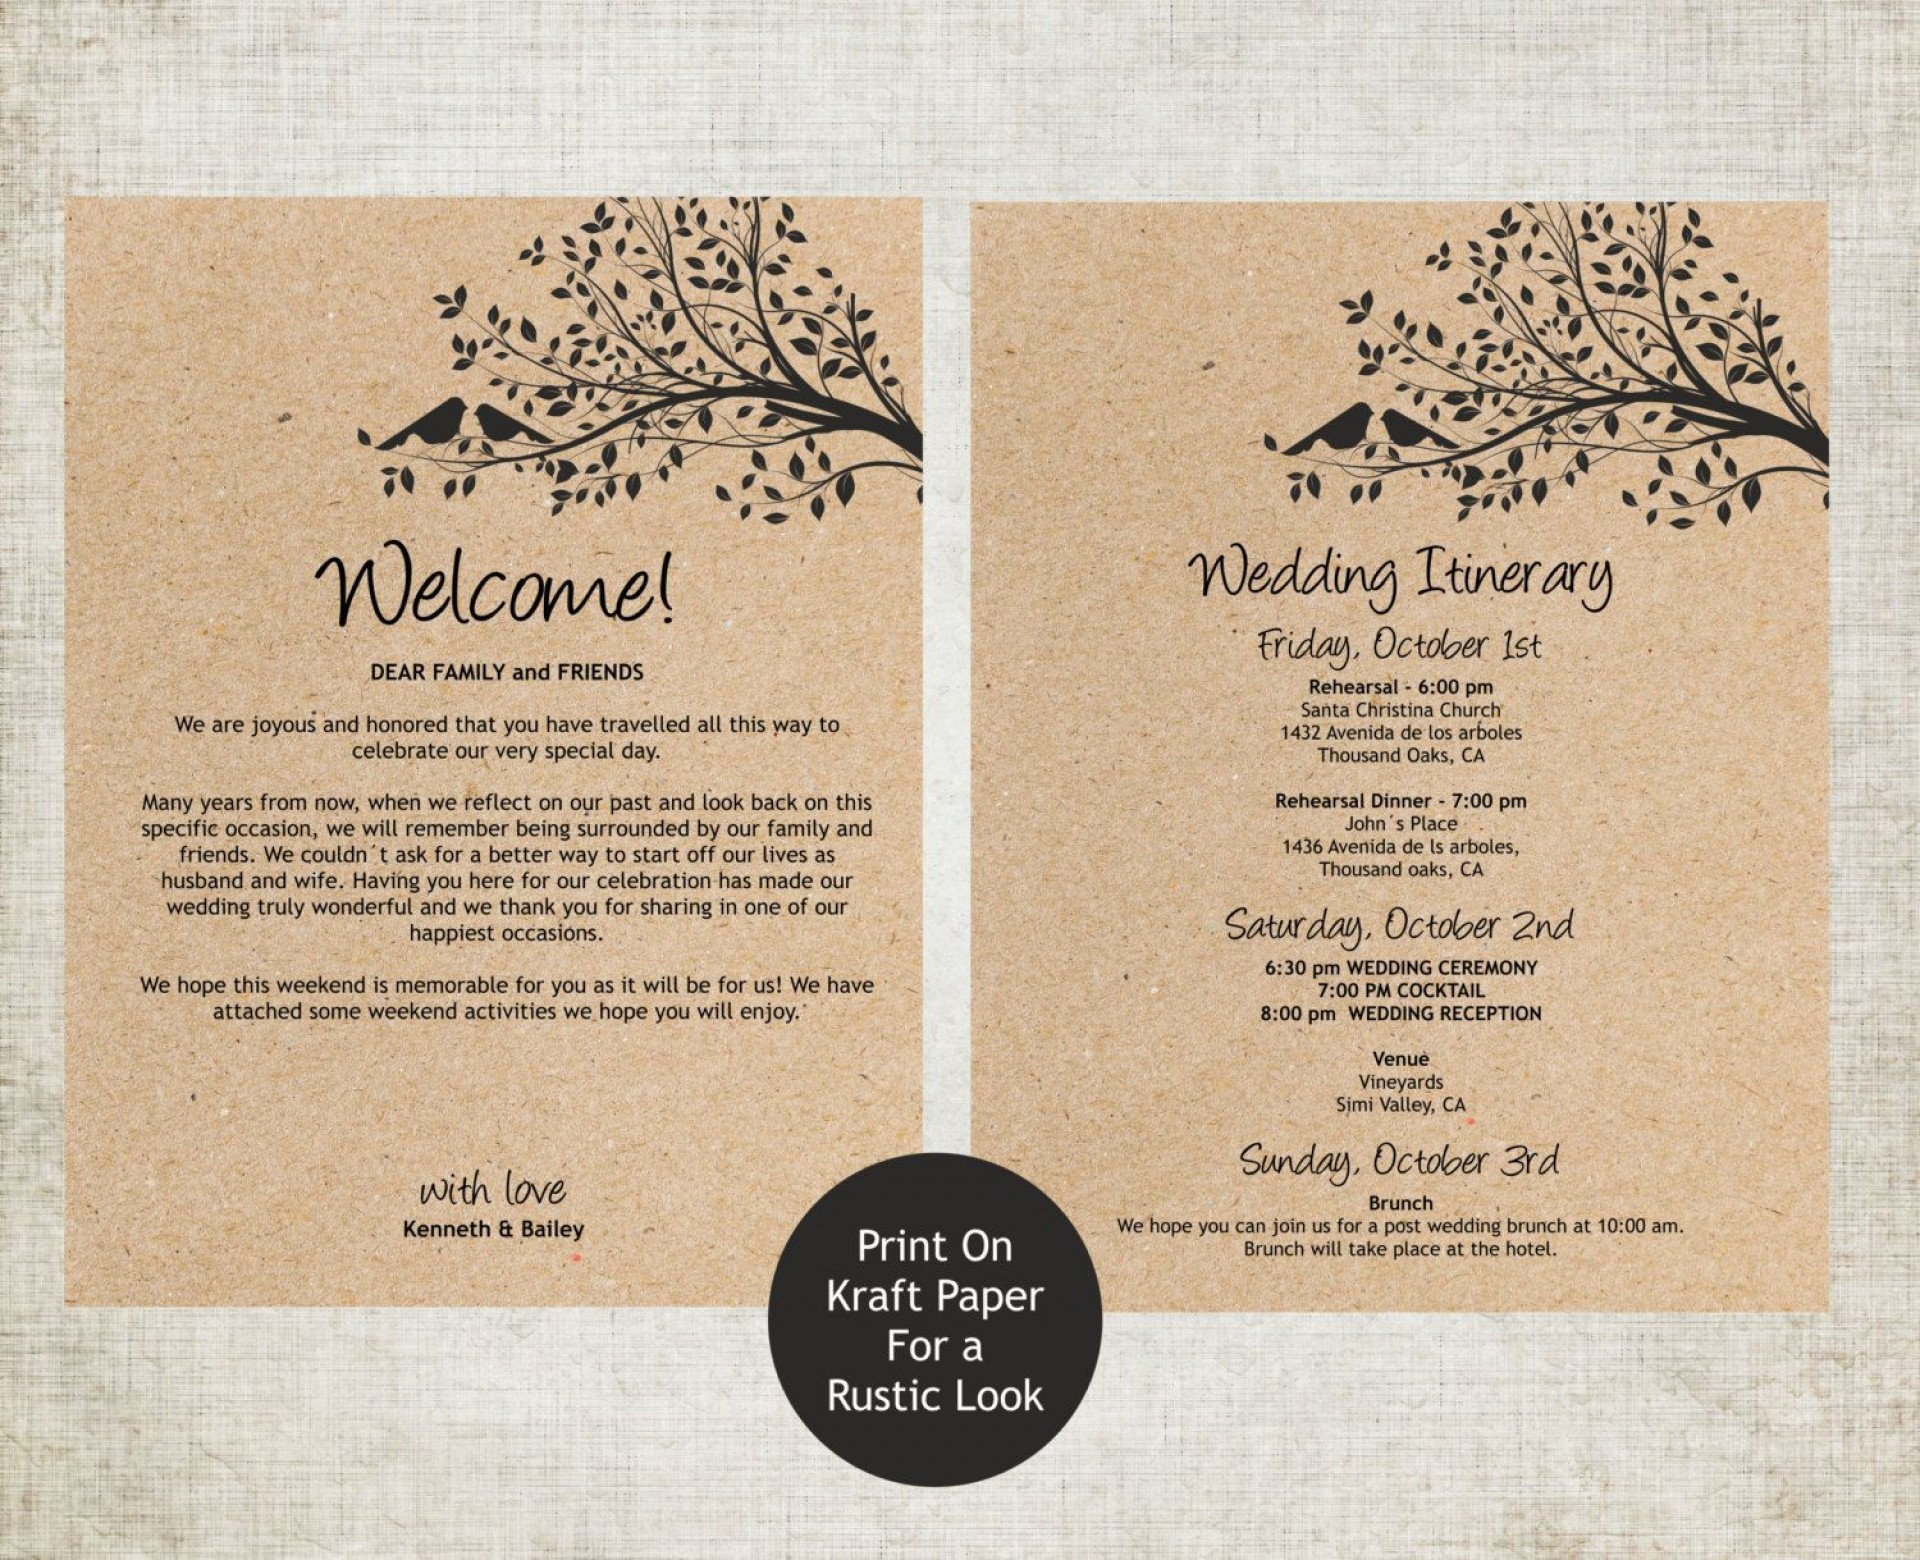 006 Unbelievable Destination Wedding Welcome Letter And Itinerary Template High Def 1920